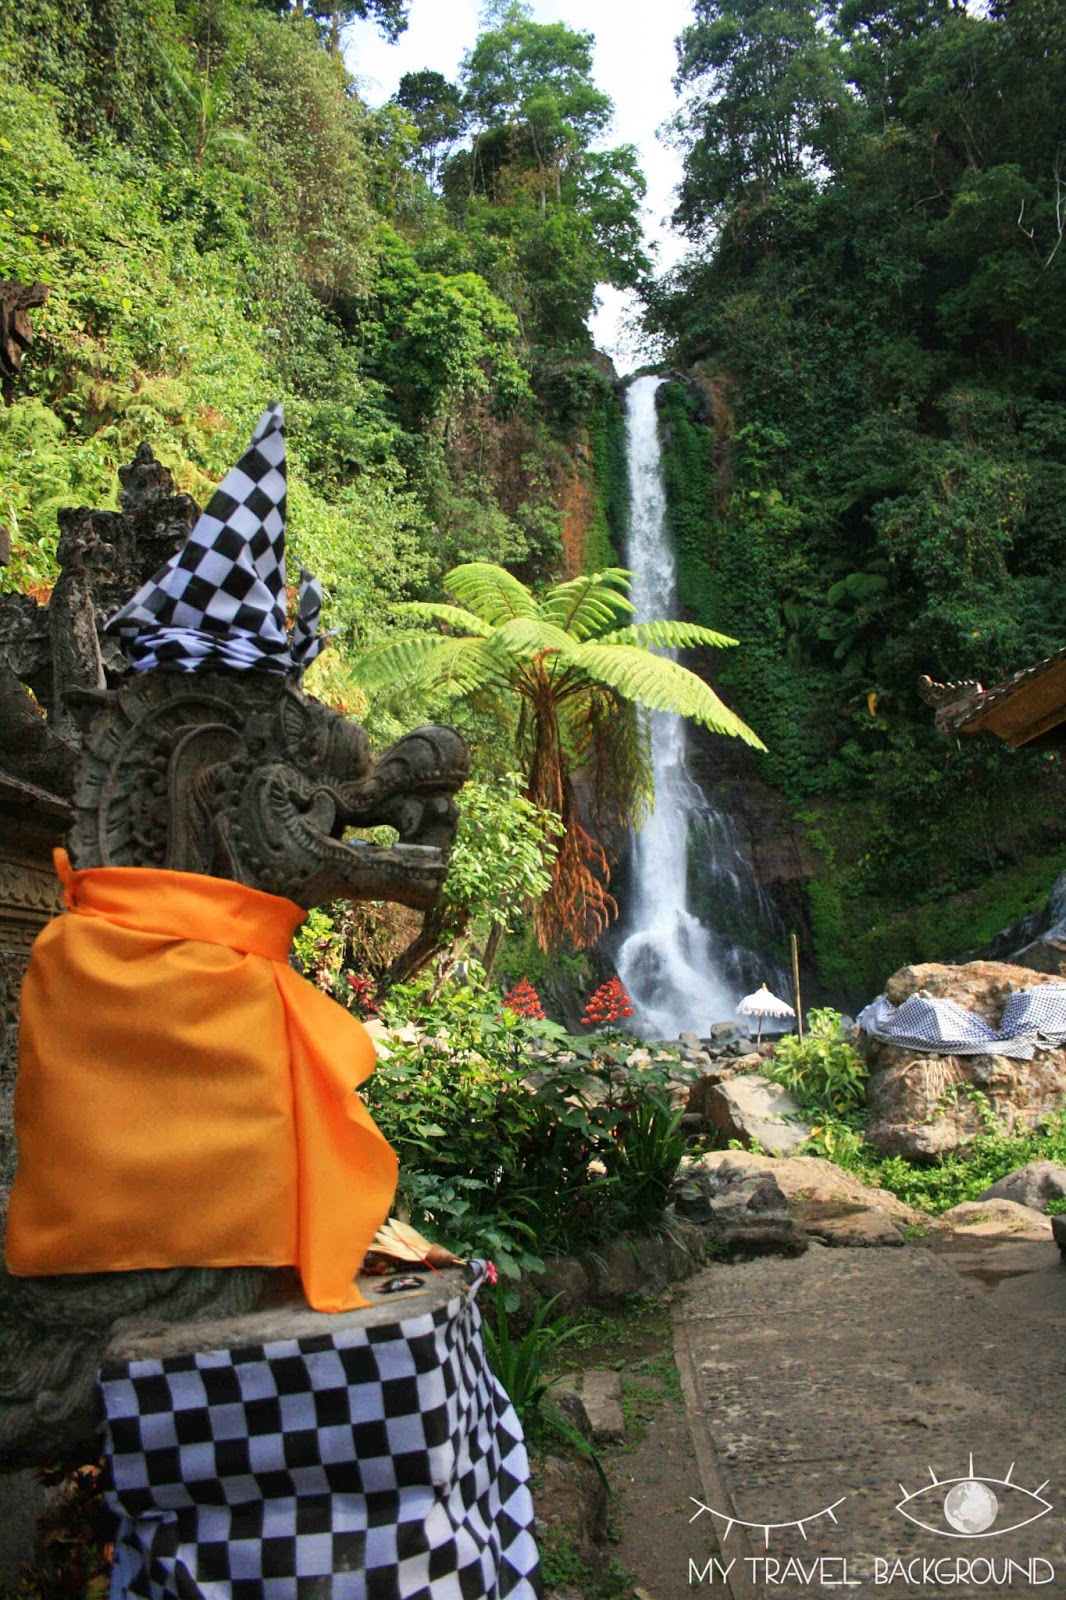 My Travel Background : que visiter dans le Nord de Bali? Cascade Gitgit